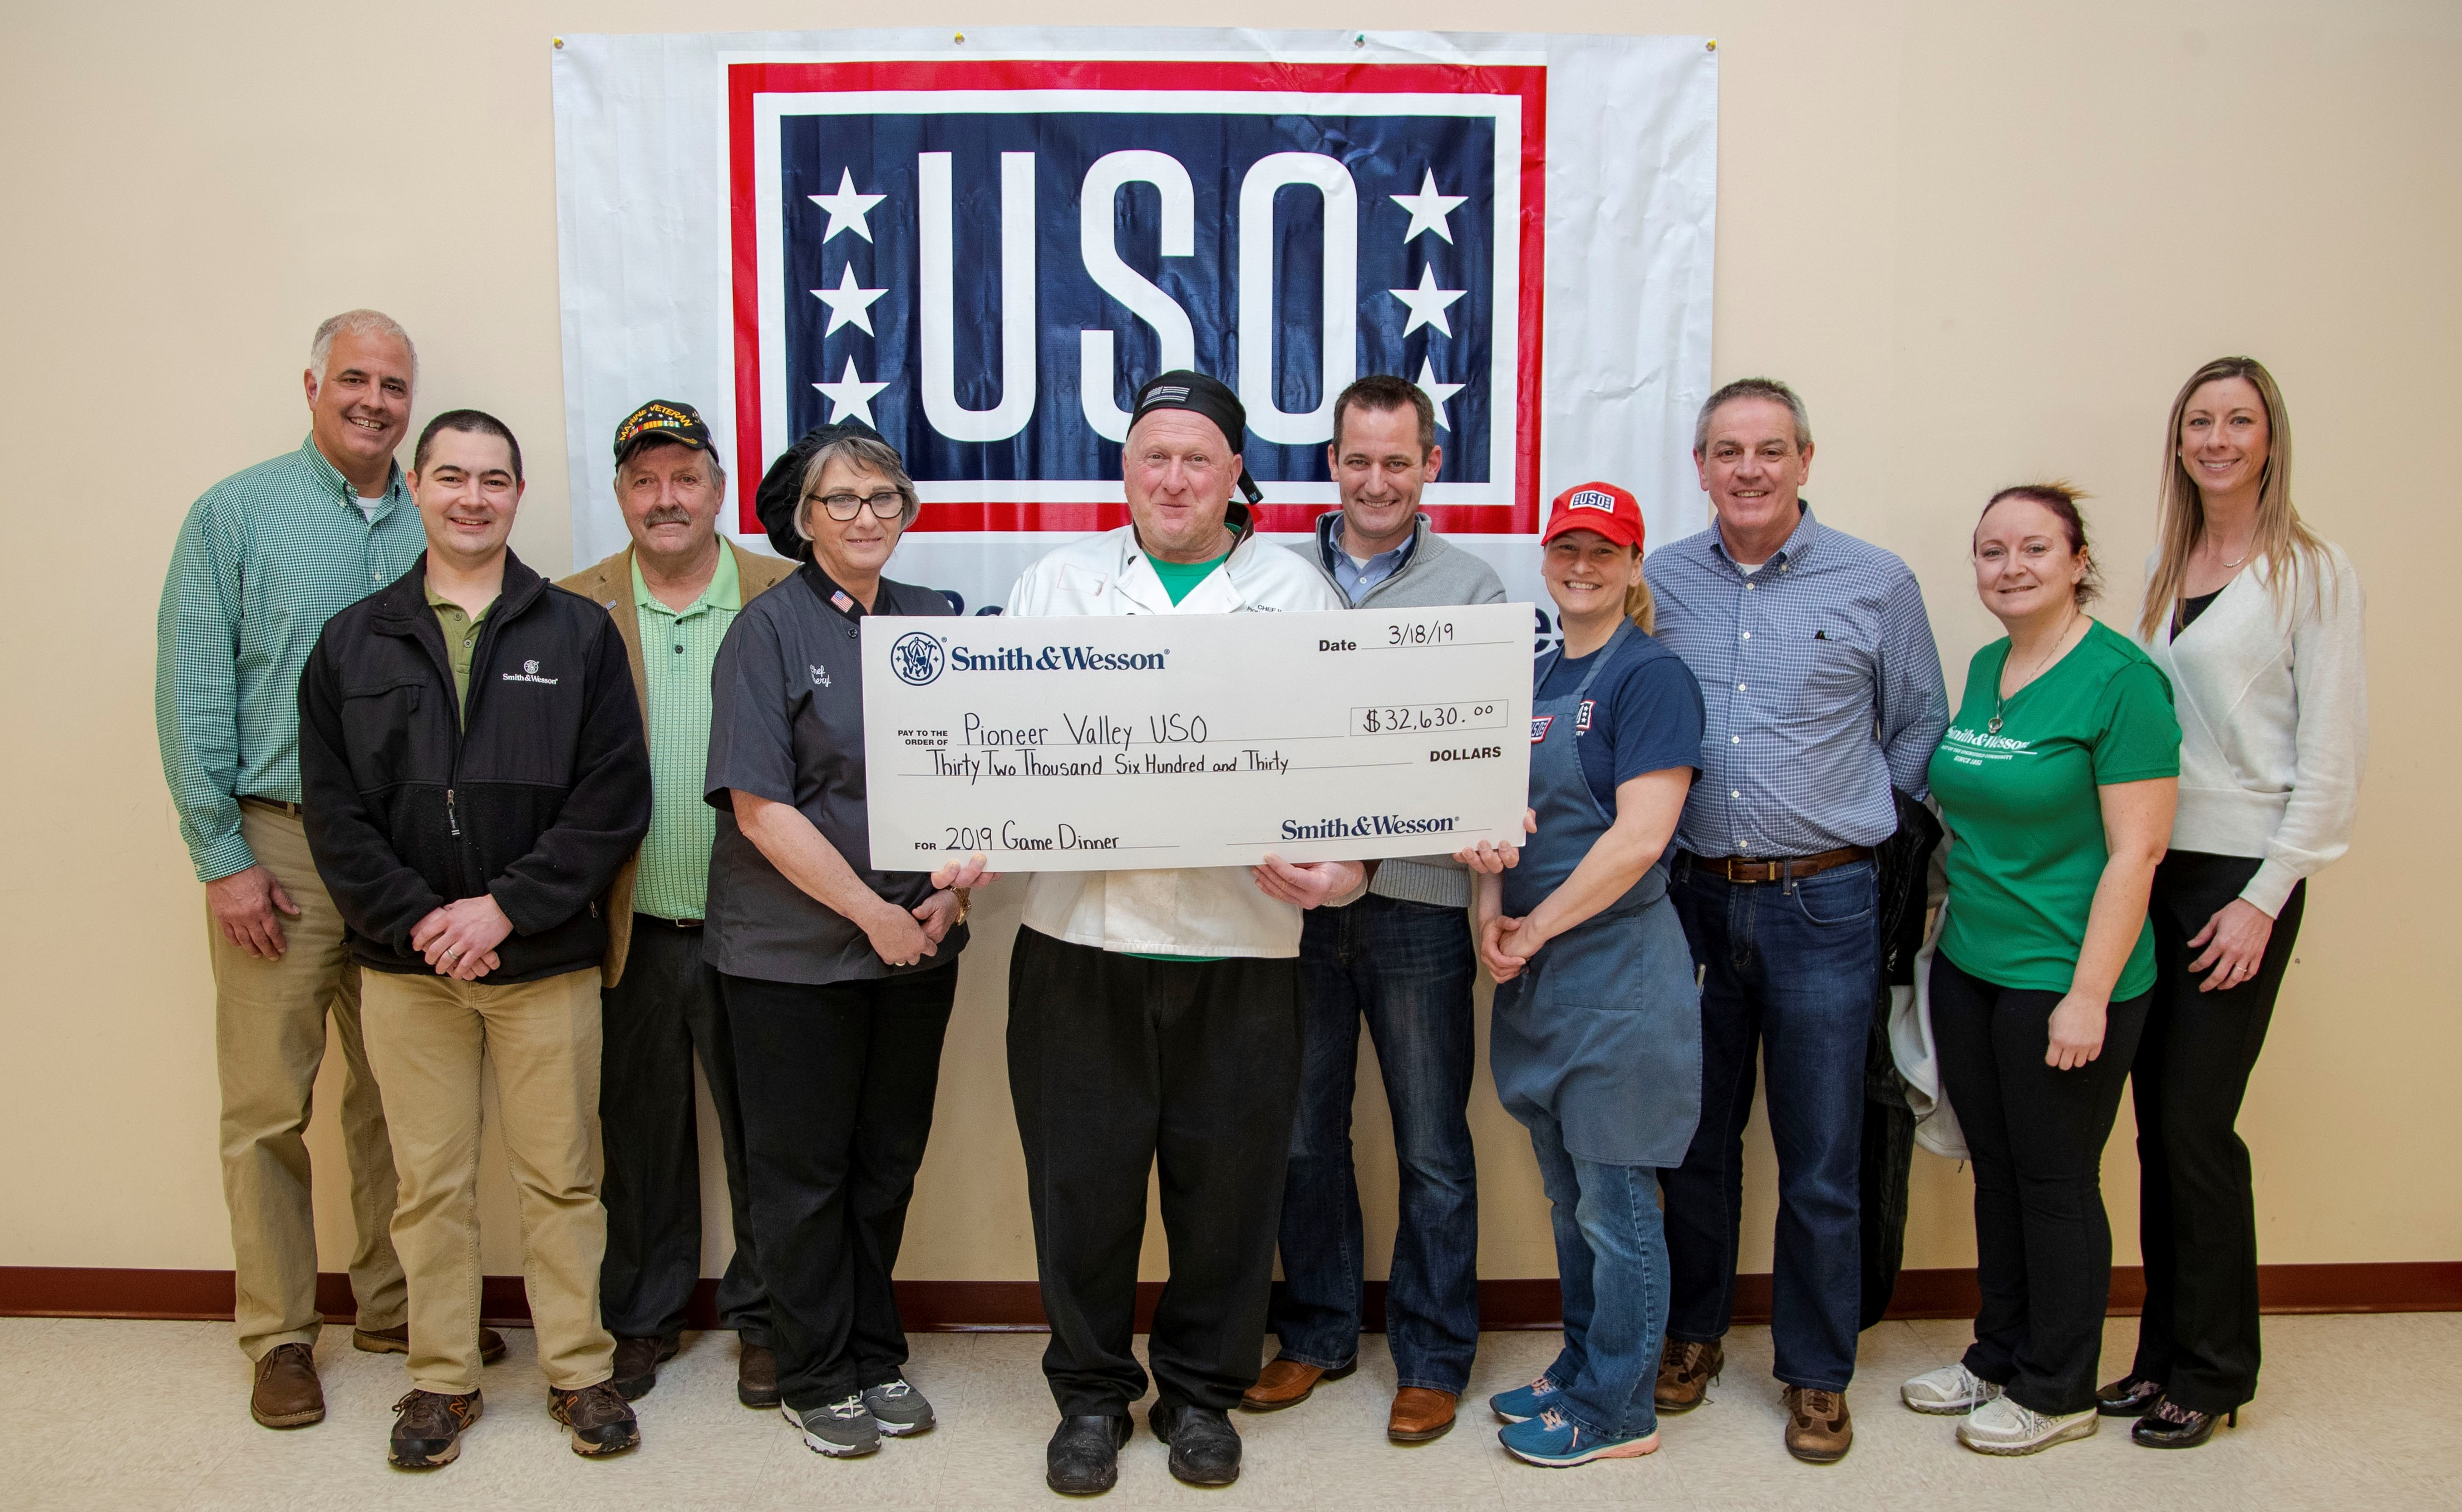 Smith & Wesson Donates $32,000 to Pioneer Valley USO